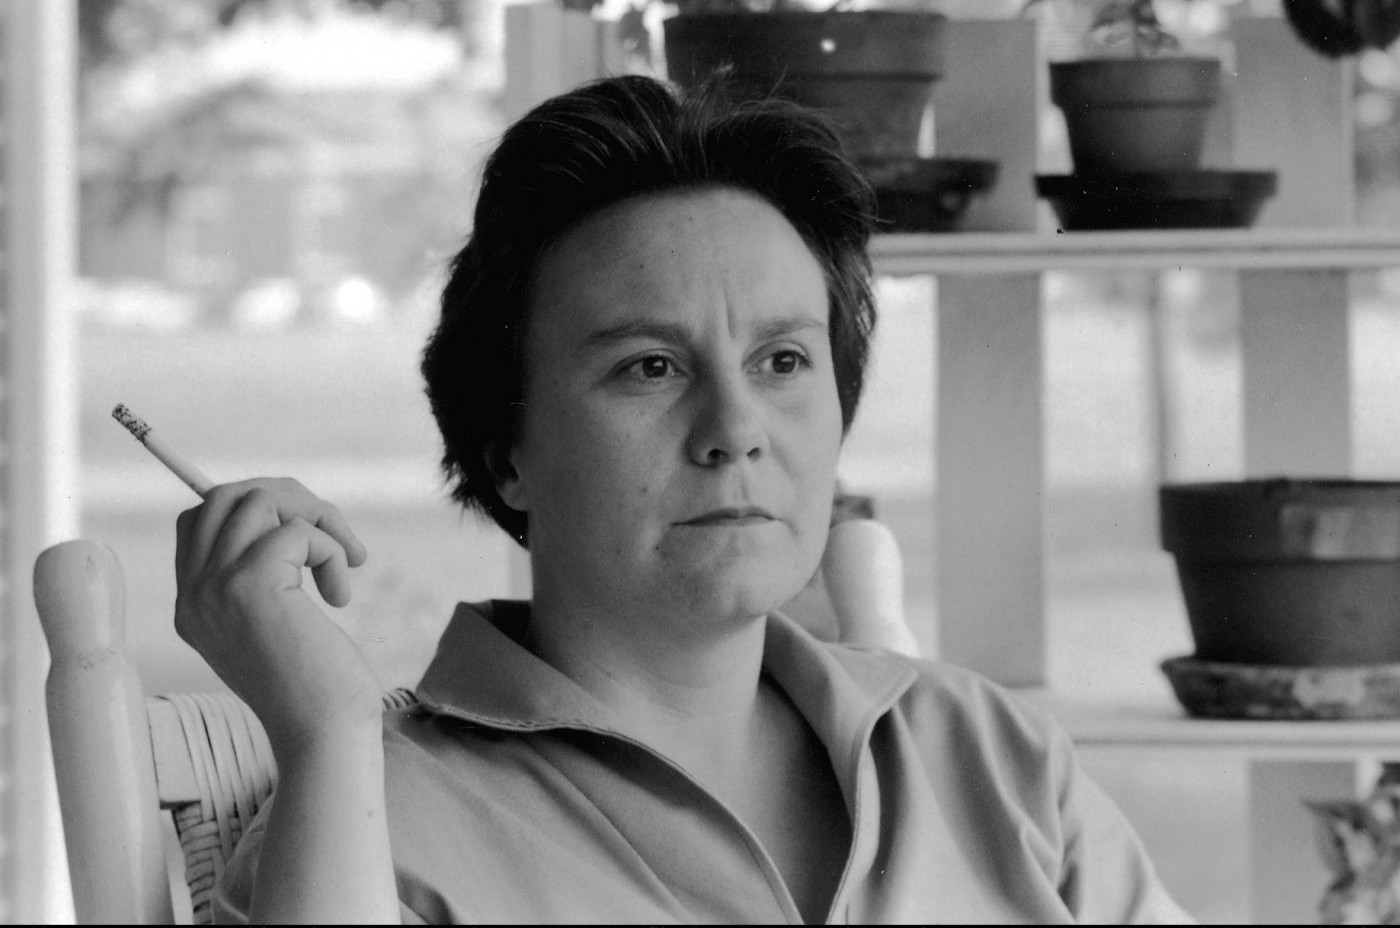 """Harper Lee's new novel could be a """"black swan."""" Photo: Donald Uhrbrock / Time Life Pictures / Getty"""